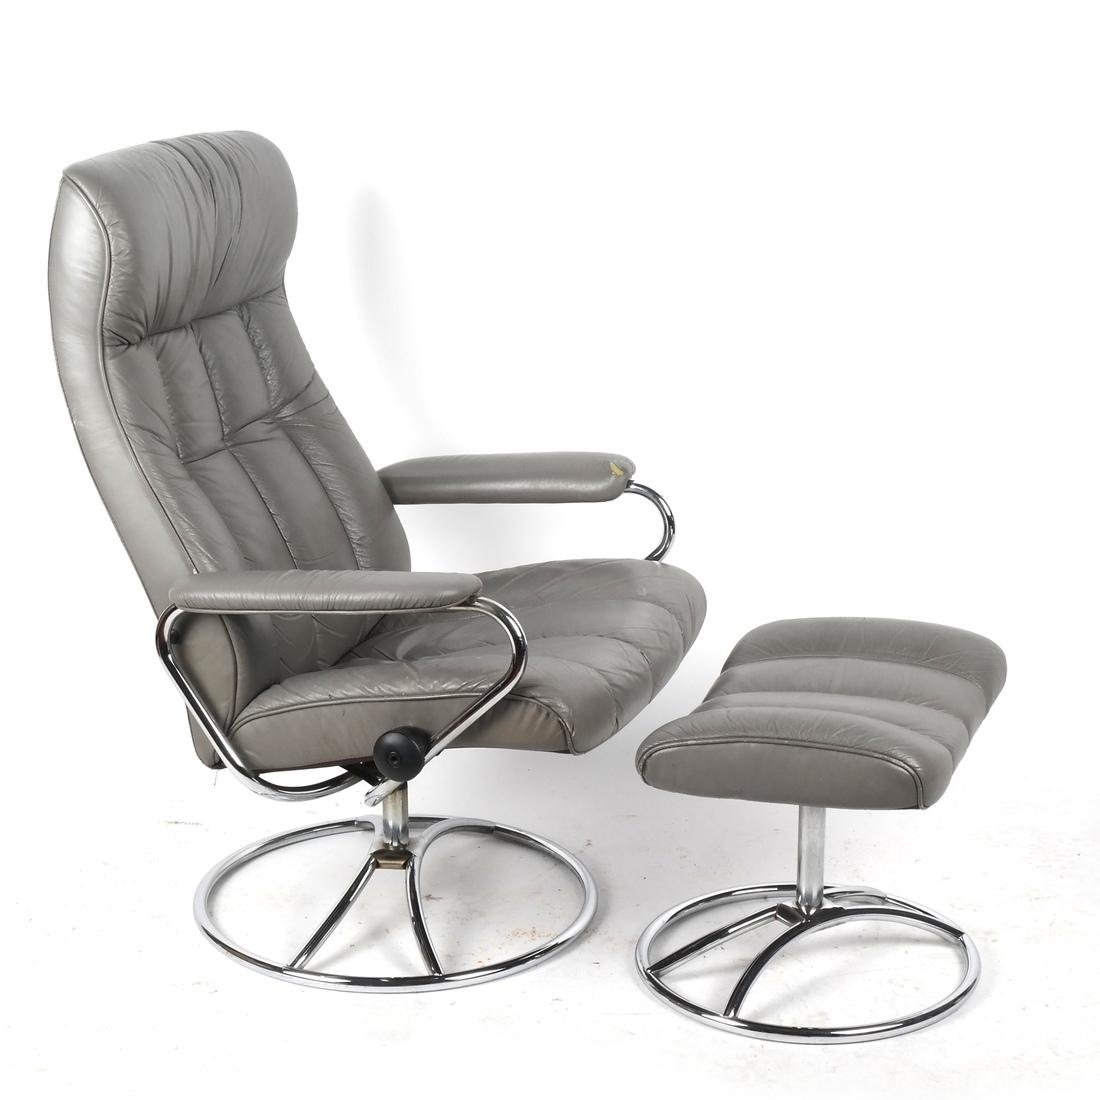 Contemporary Gray Chair and Ottoman